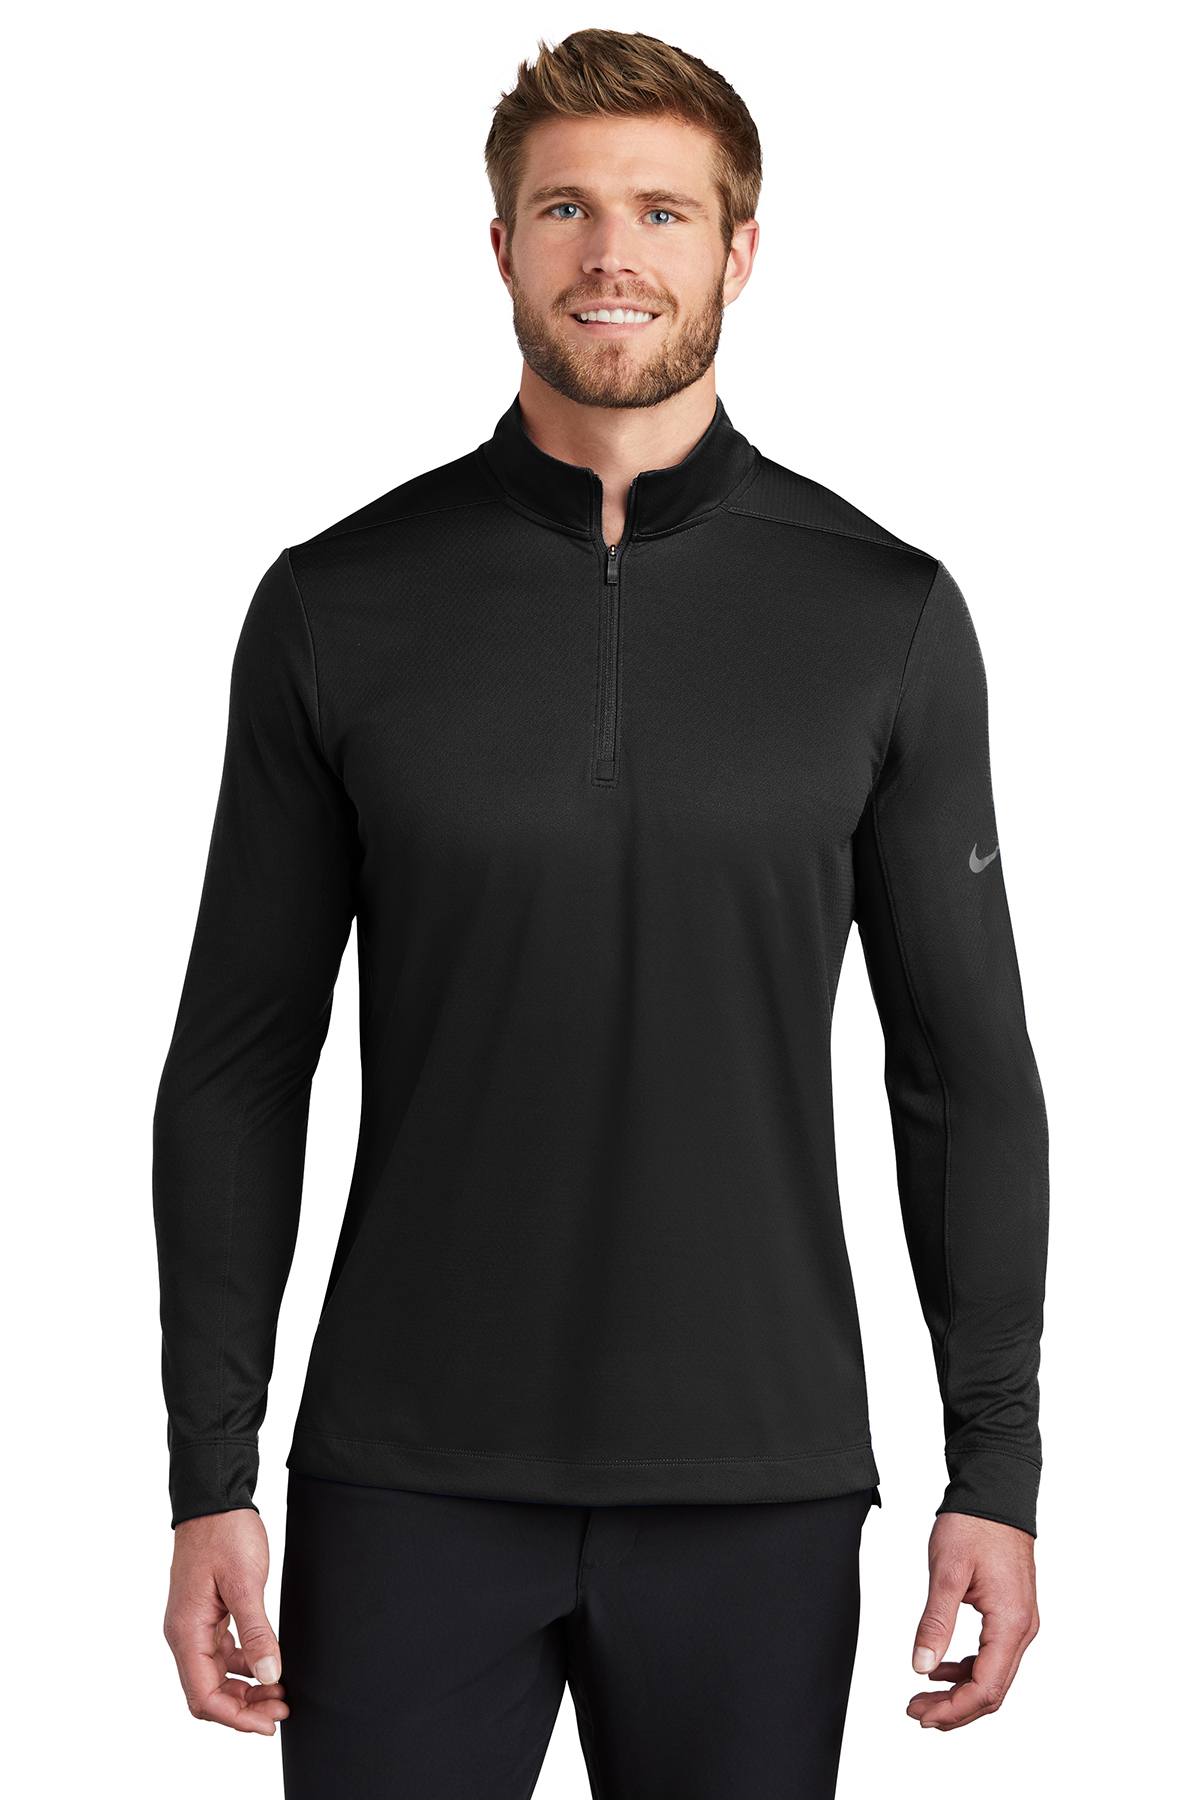 Nike NKBV6044 - Dry 1/2-Zip Cover-Up